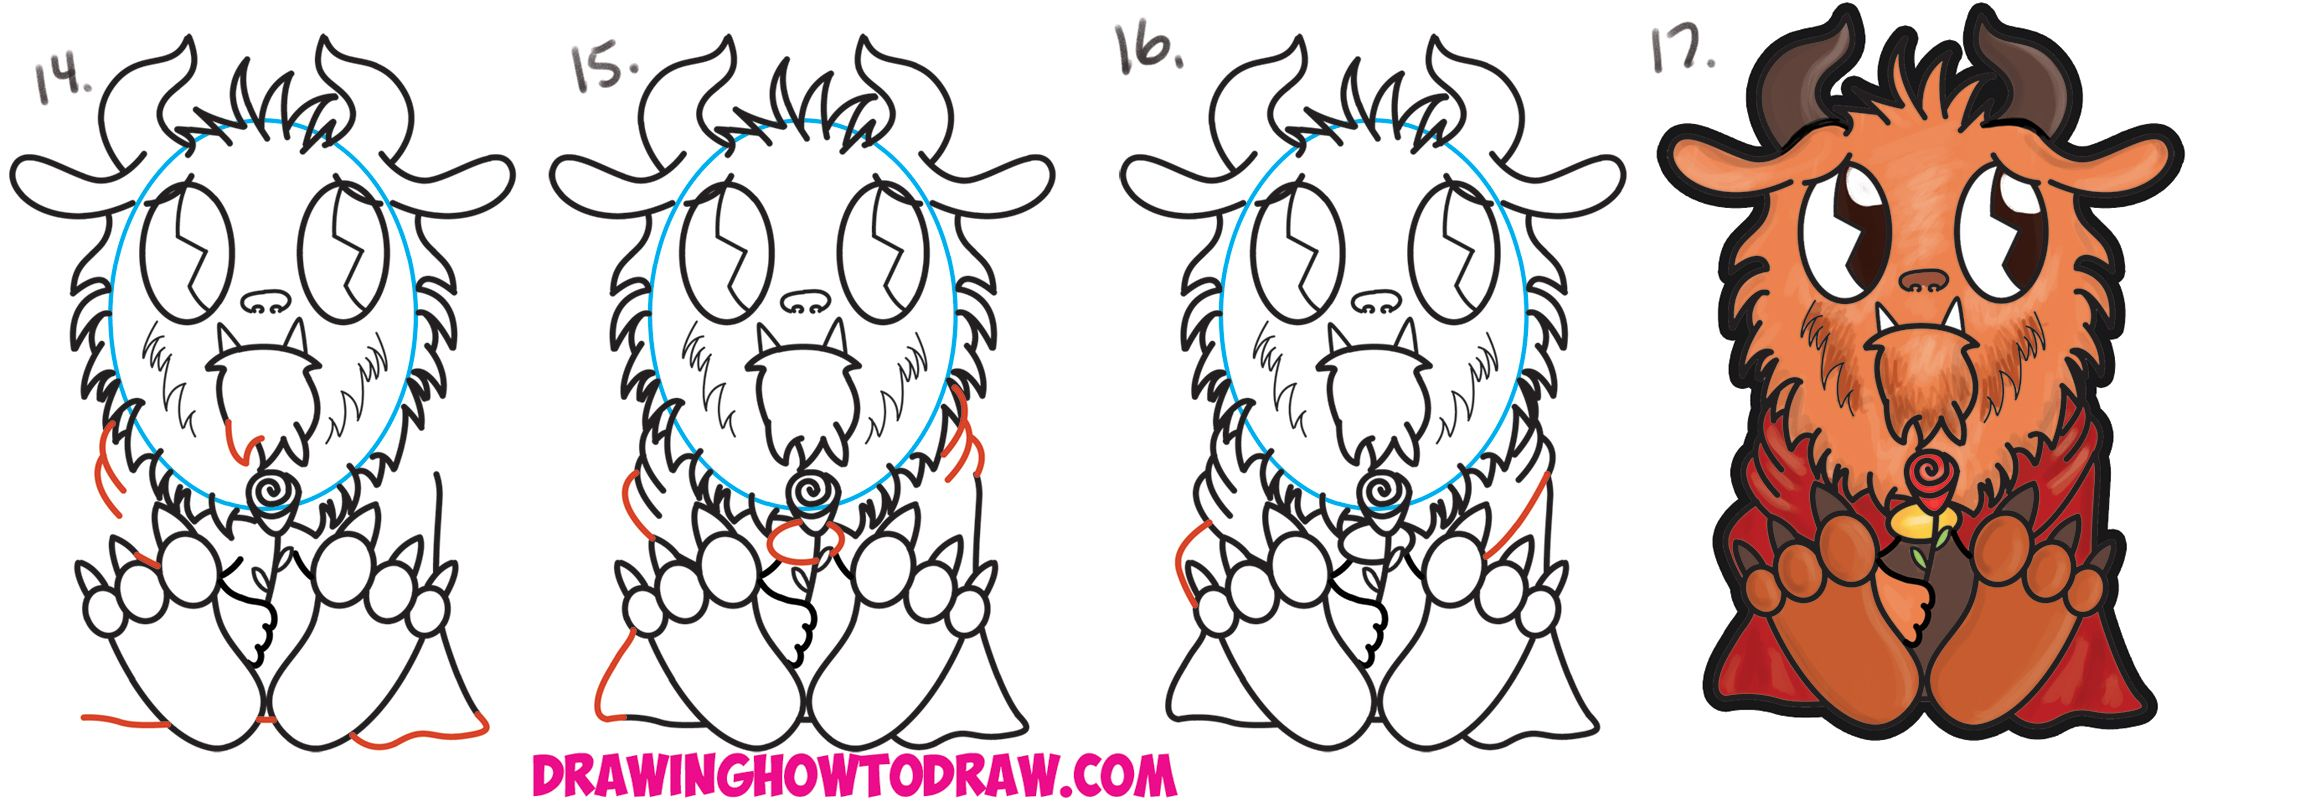 How To Draw Cute Kawaii Chibi Beast From Beauty And The